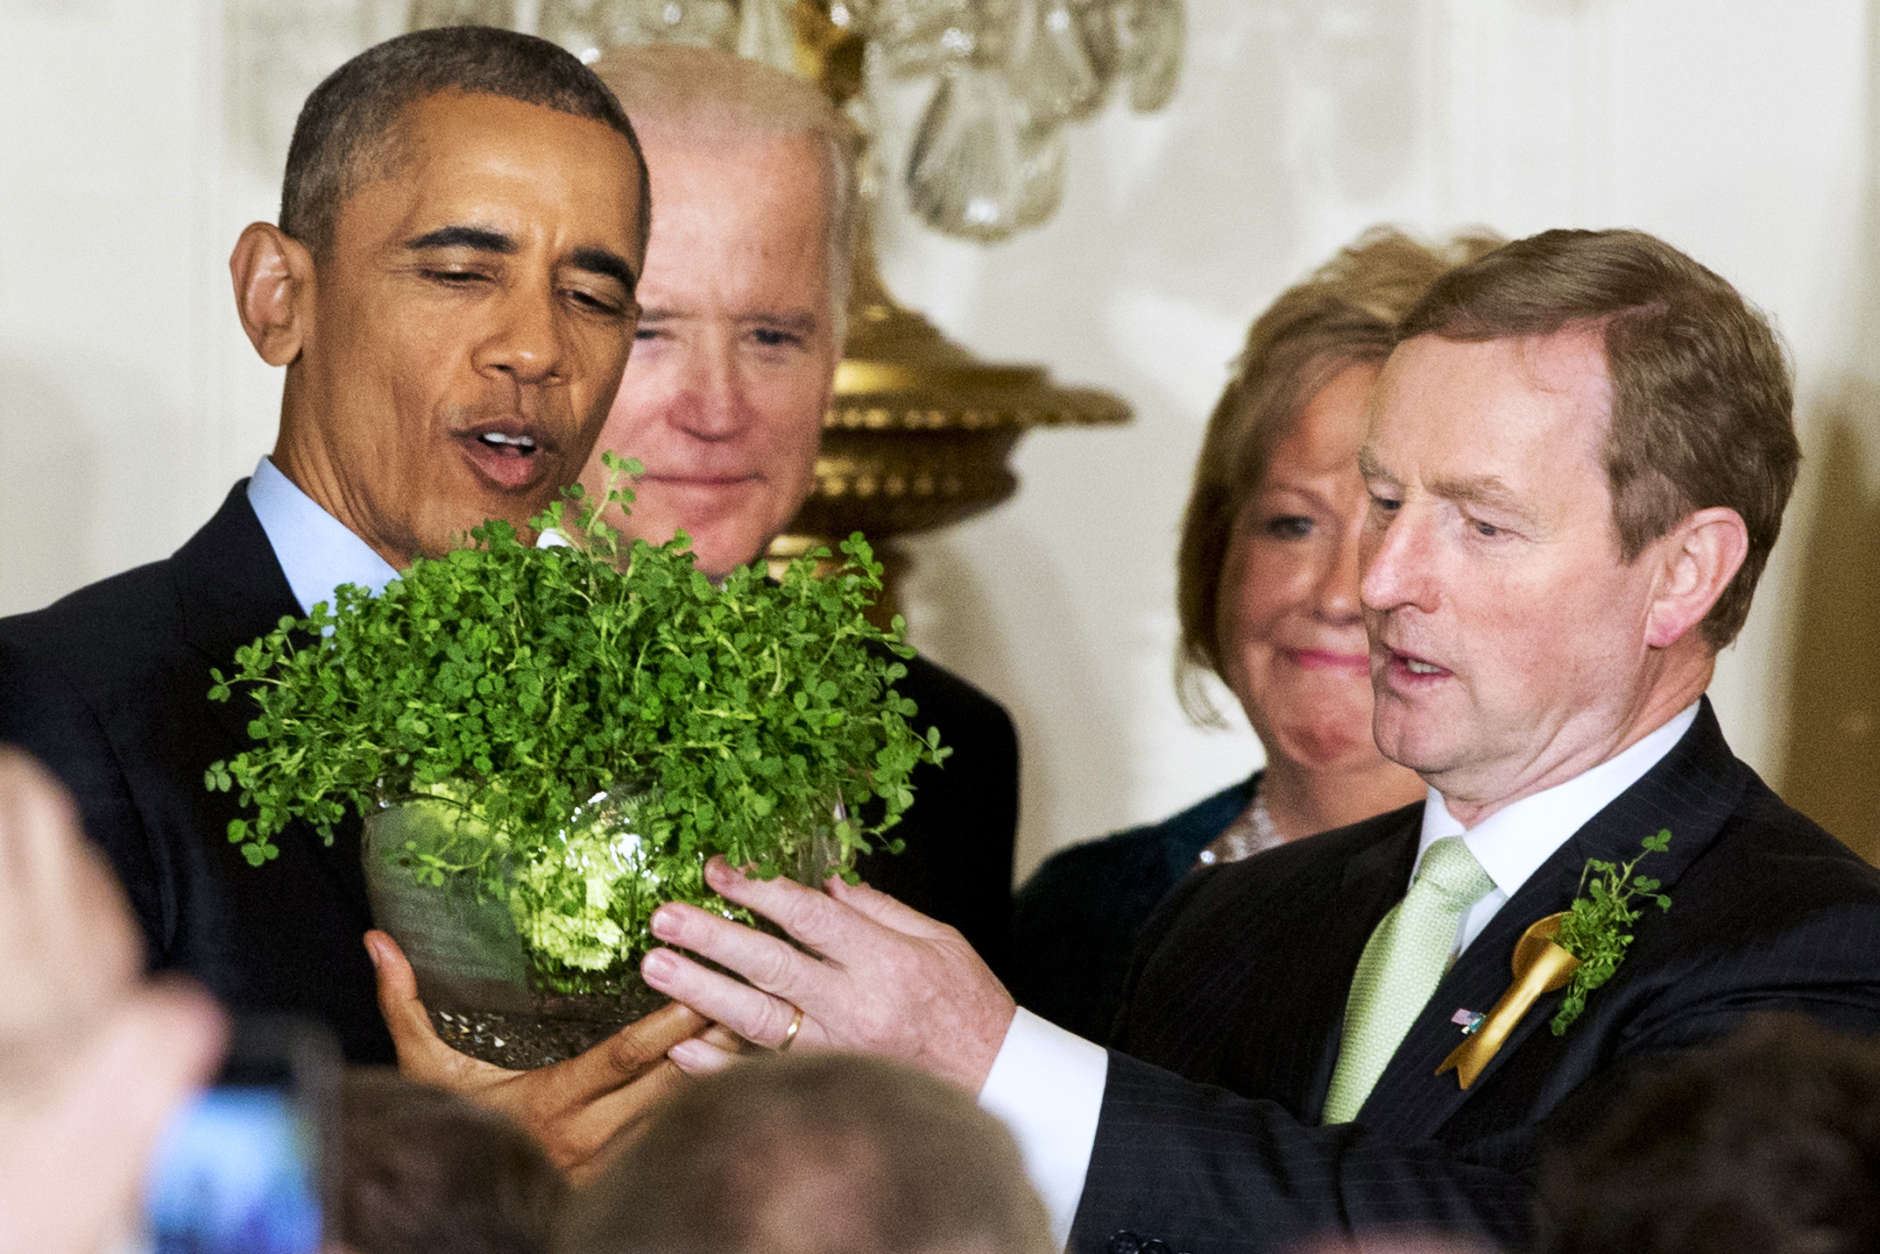 President Barack Obama, left, with Vice President Joe Biden, and Ireland Prime Minister Enda Kenny, right, with his wife Fionnuala Kenny, hold up a bowl of shamrocks during a reception in honor of St. Patrick's Day in the East Room of the White House in Washington, Tuesday, March 15, 2016. Obama is celebrating his eighth St. Patrick's Day in the White House. (AP Photo/Jacquelyn Martin)